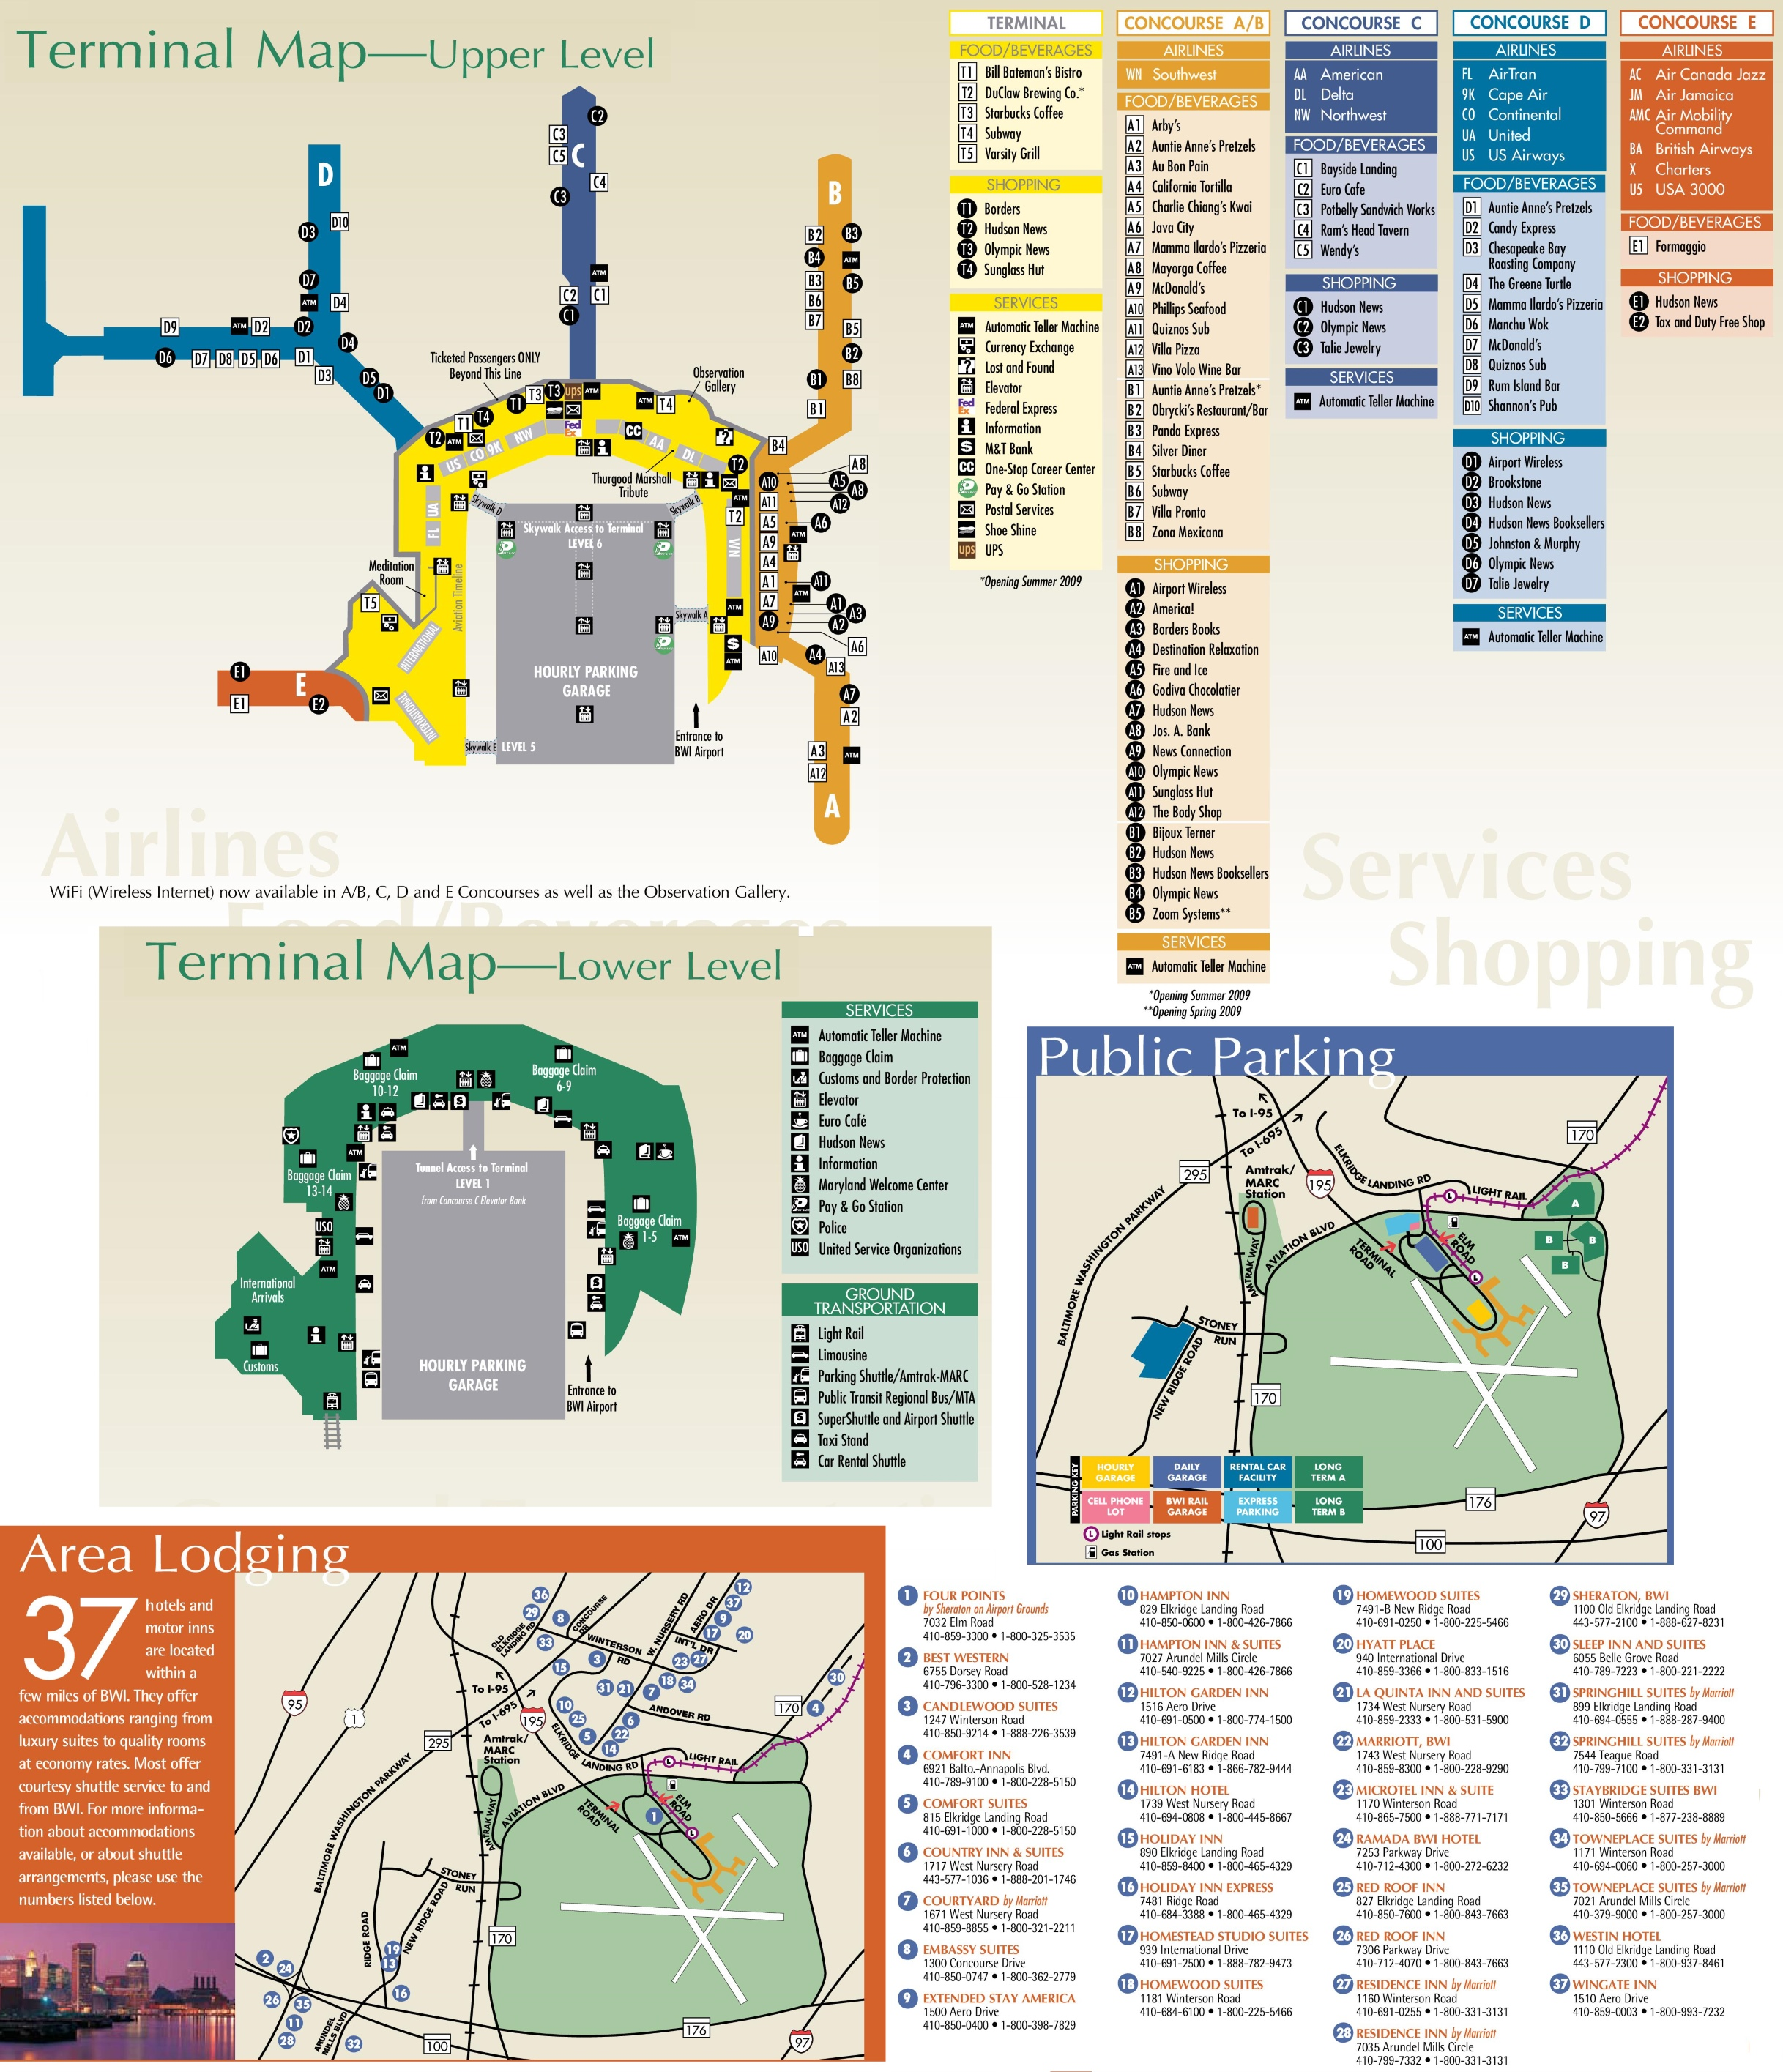 baltimore international airport terminal map Baltimore Washington International Airport Map baltimore international airport terminal map